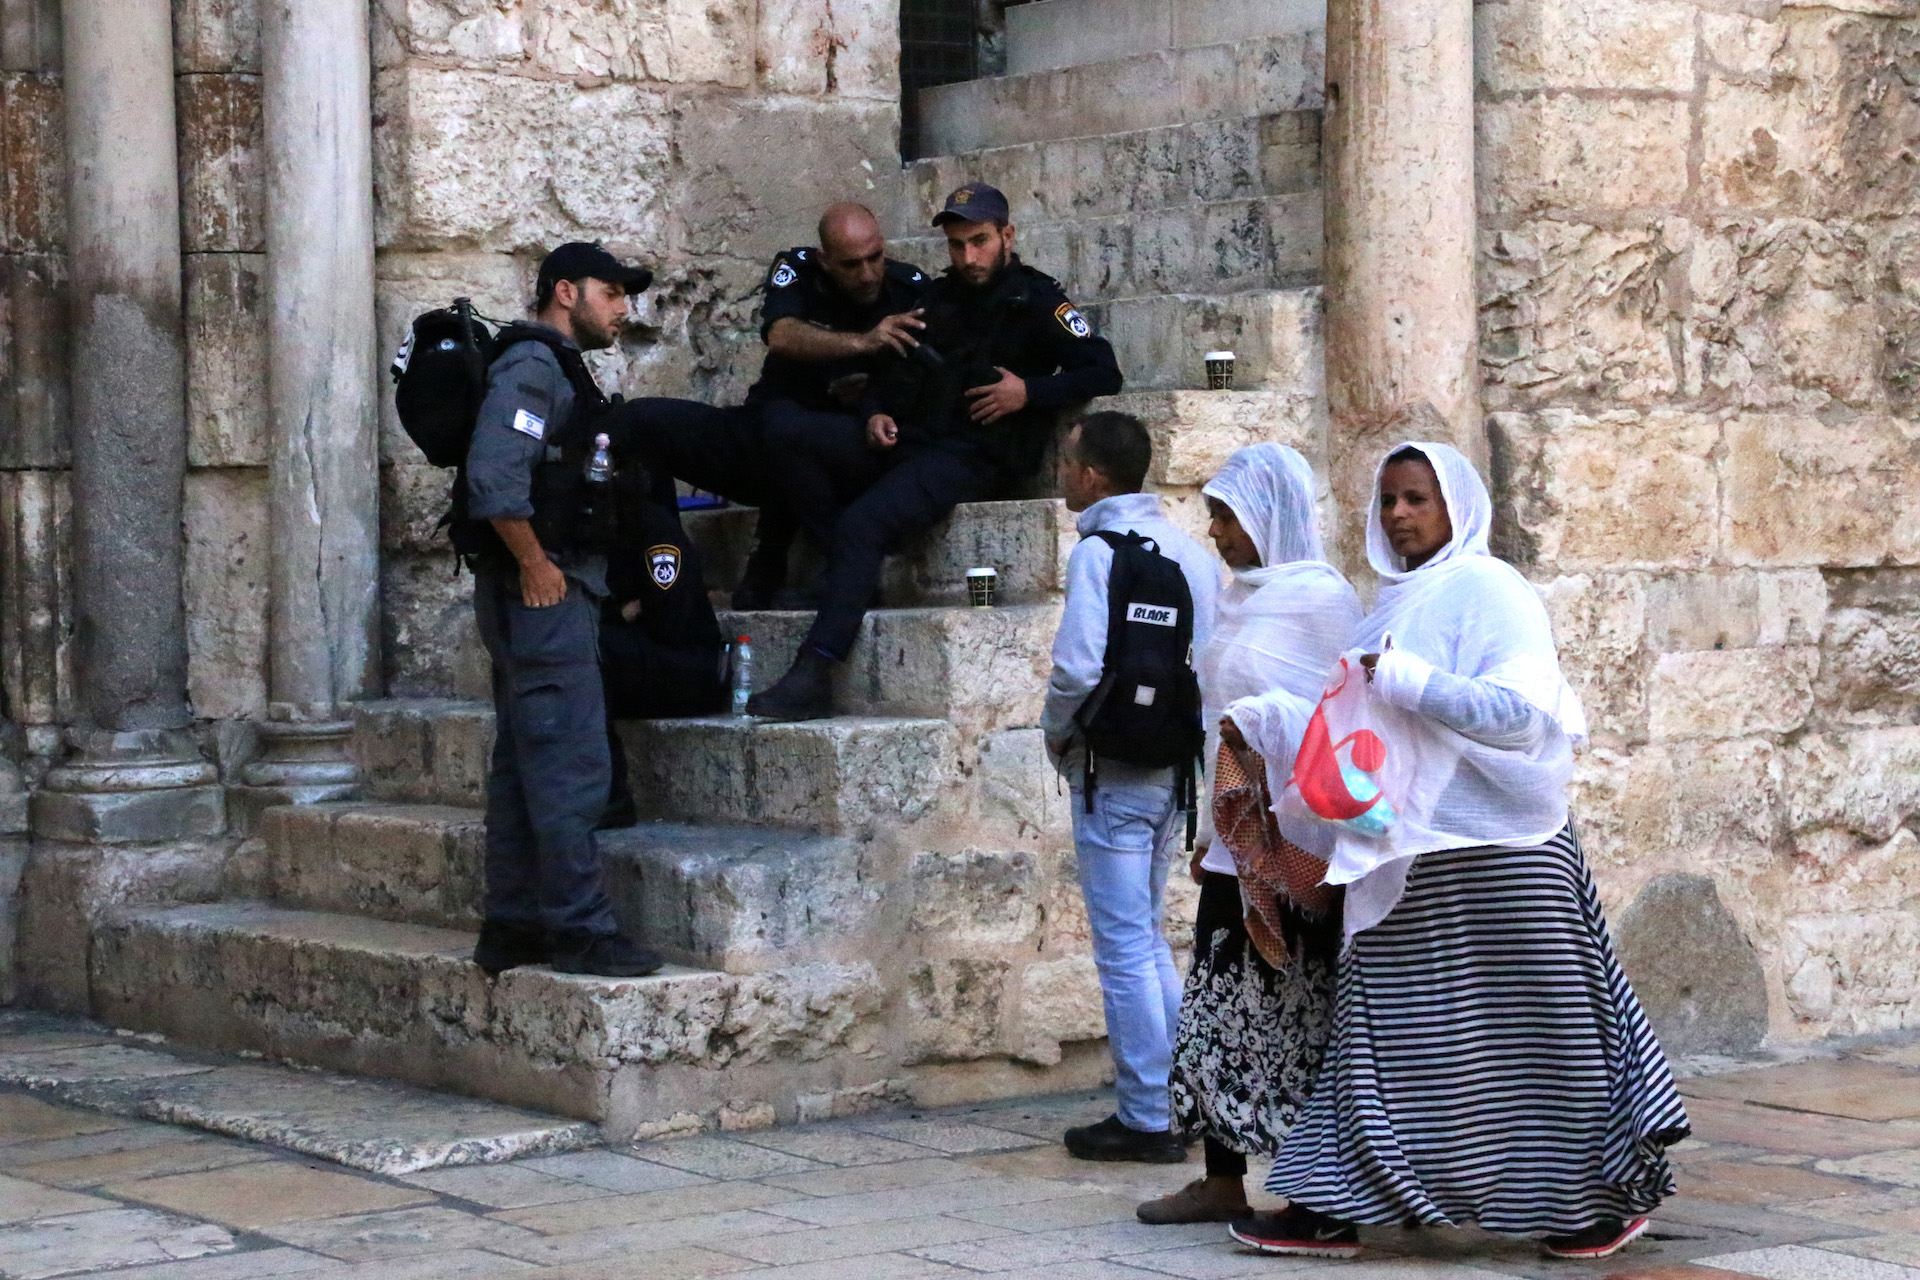 JERUSALEM, ISRAEL, MAY 29, 2016. Women on their way to the entrance of the Church of the Holy Sepulchre, where mass has just begun, while guards relax on the steps of the church. Located in the Christian Quarter of the Old City of Jerusalem. 05/29/2016. Photo by Donna M. Airoldi